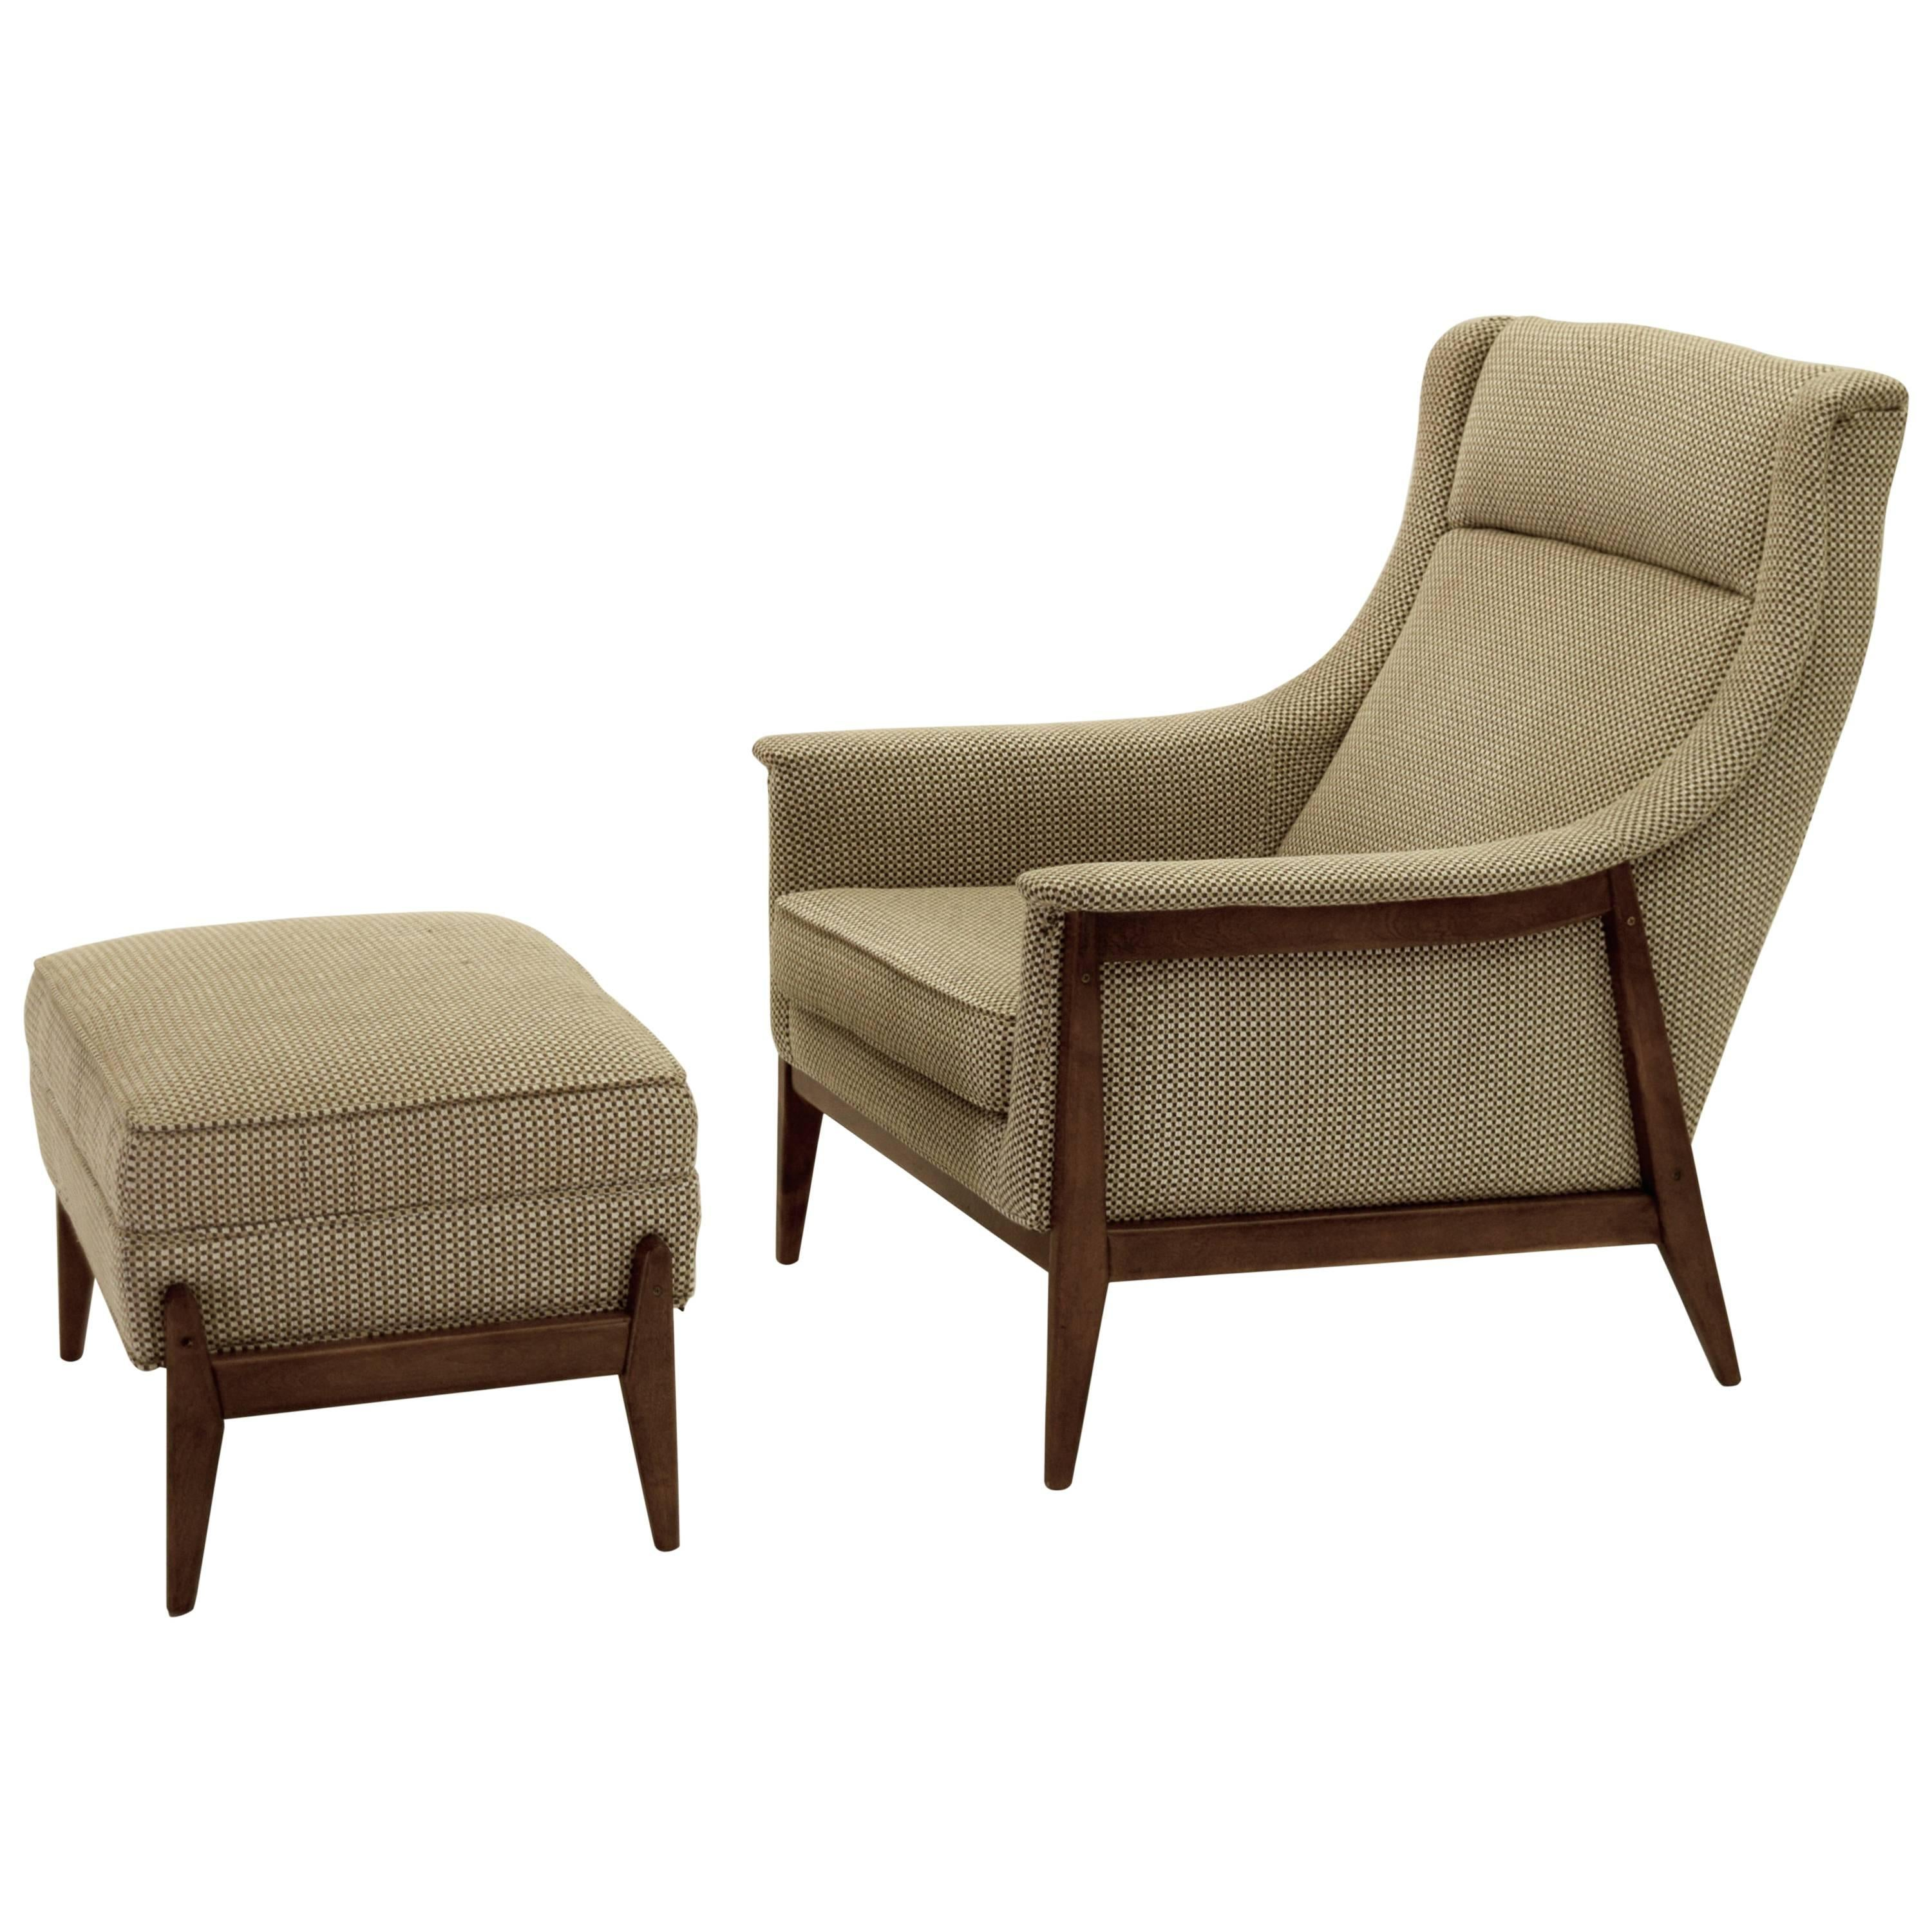 exquisite armchair and ottoman by selig in original cotton felt 1